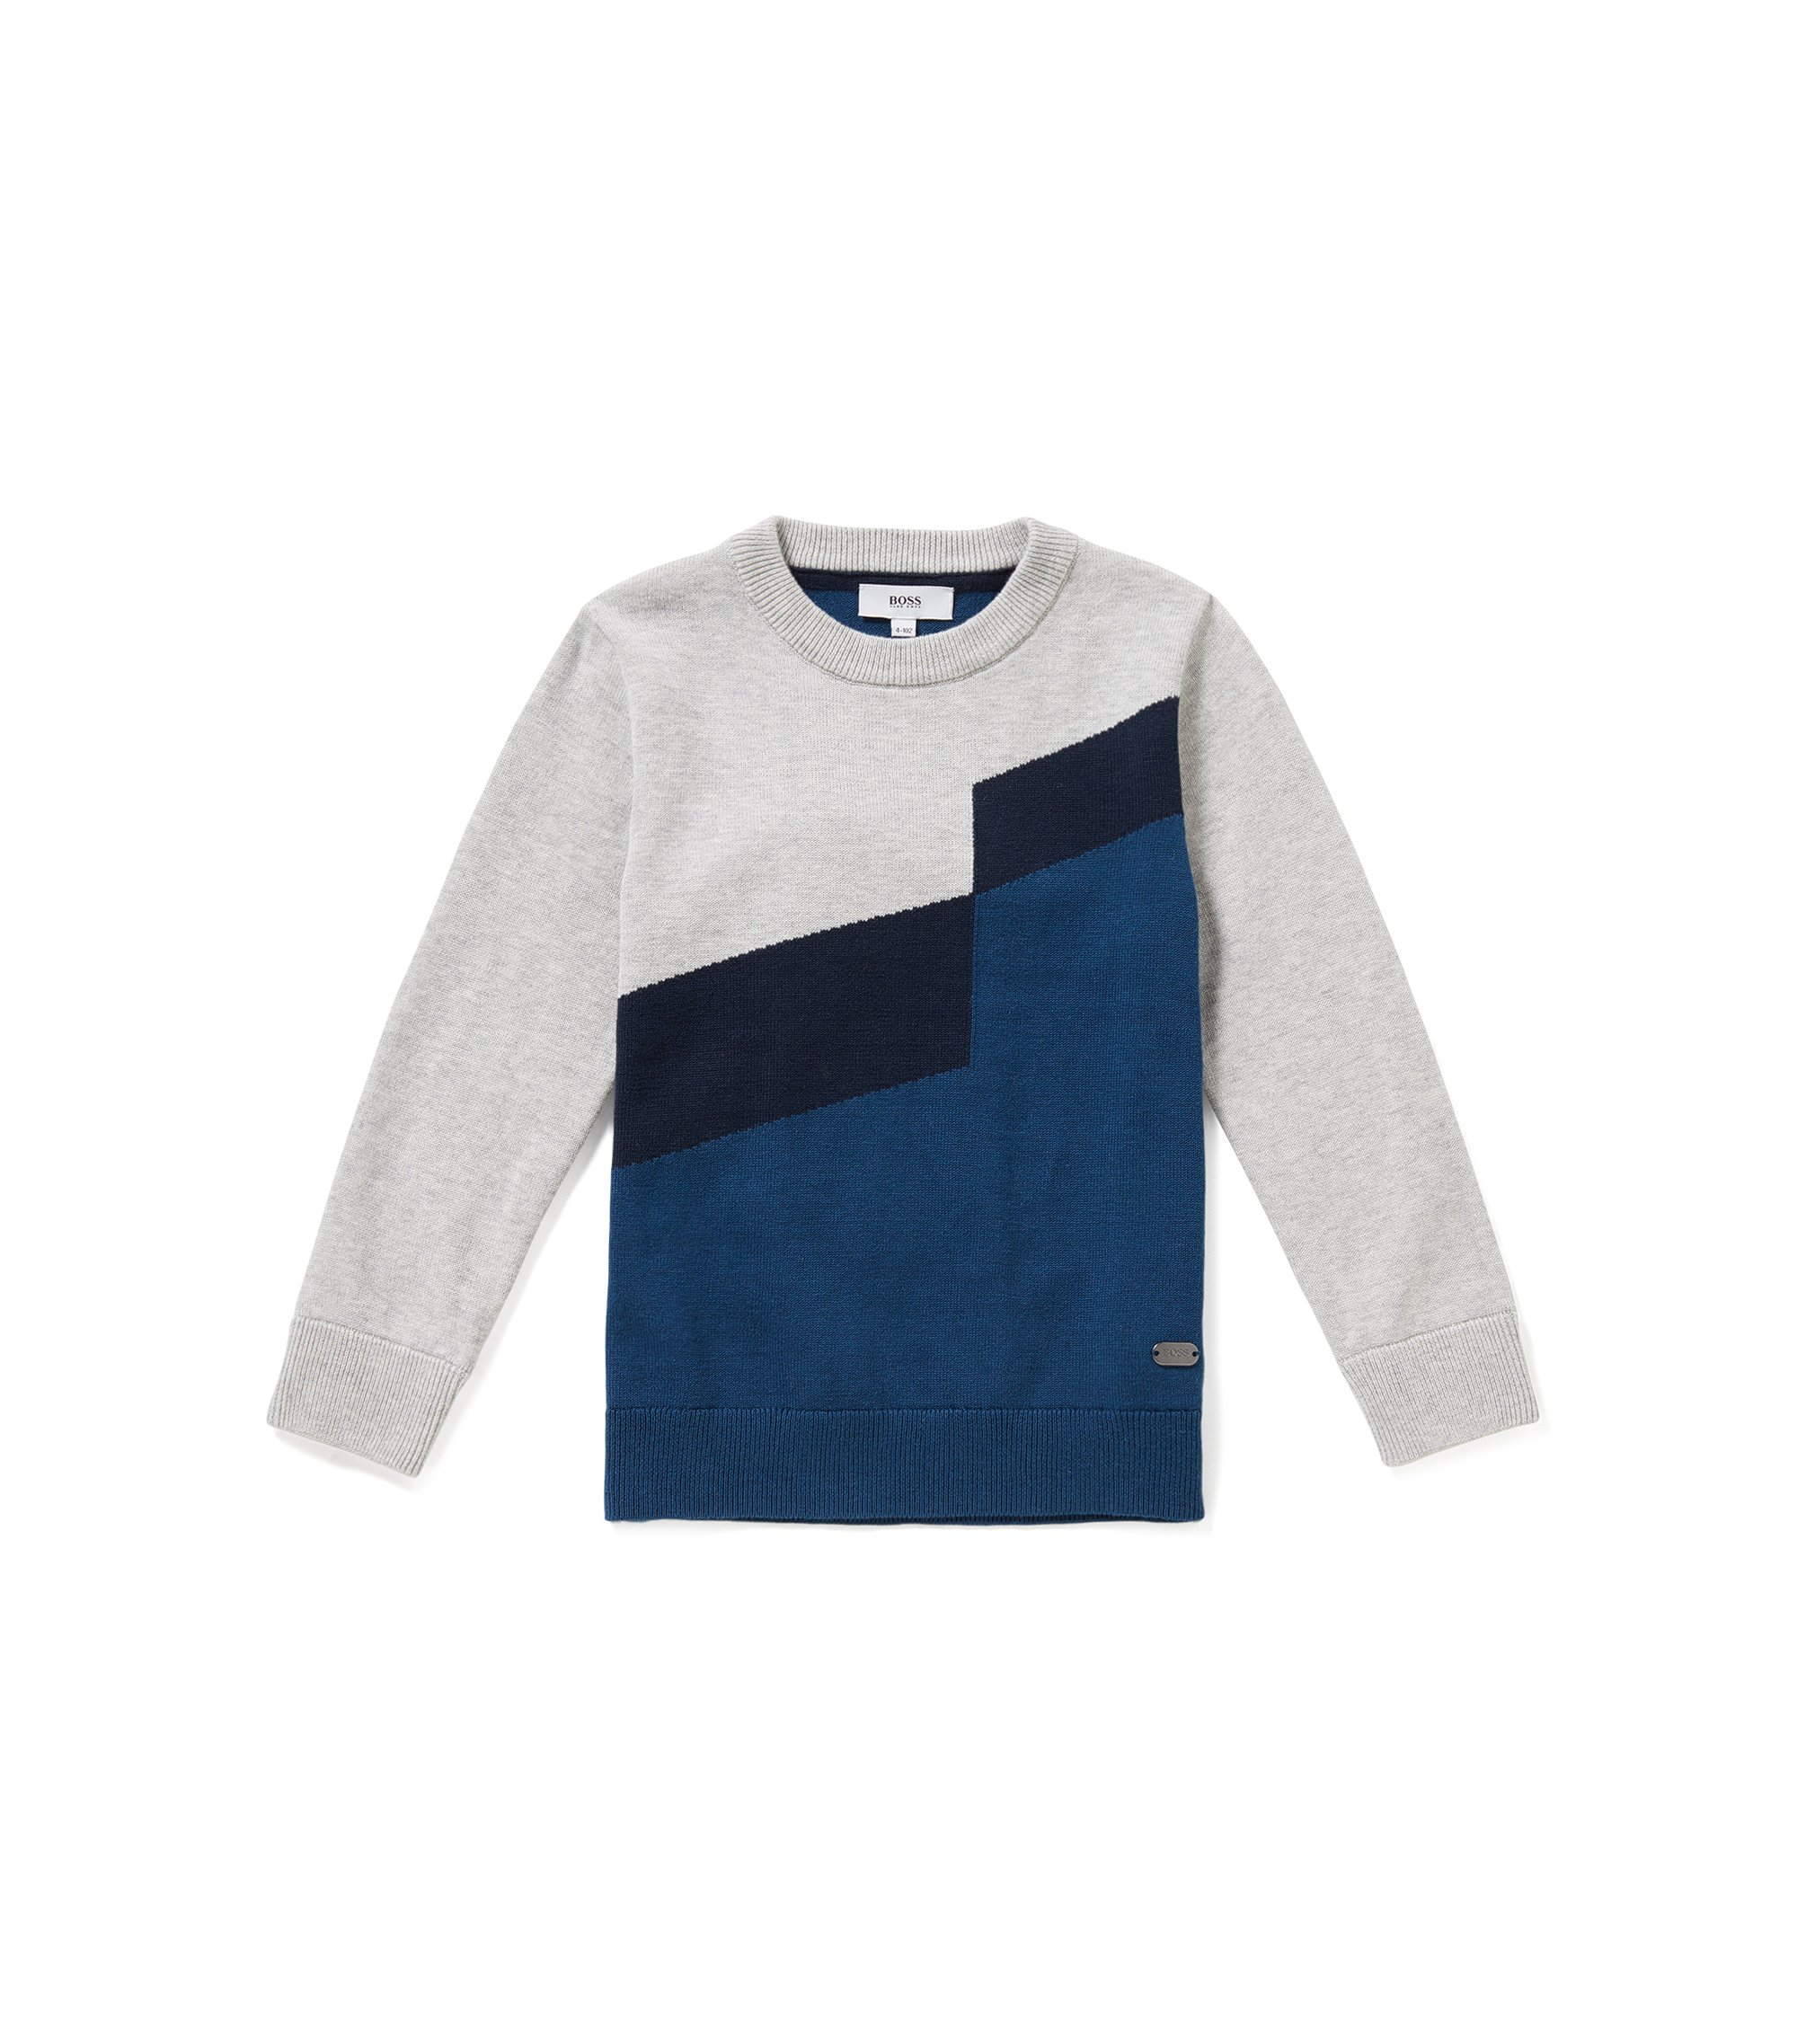 Regular-Fit Kids-Pullover aus Baumwoll-Mix mit Wolle im Colour-Block-Design, Gemustert